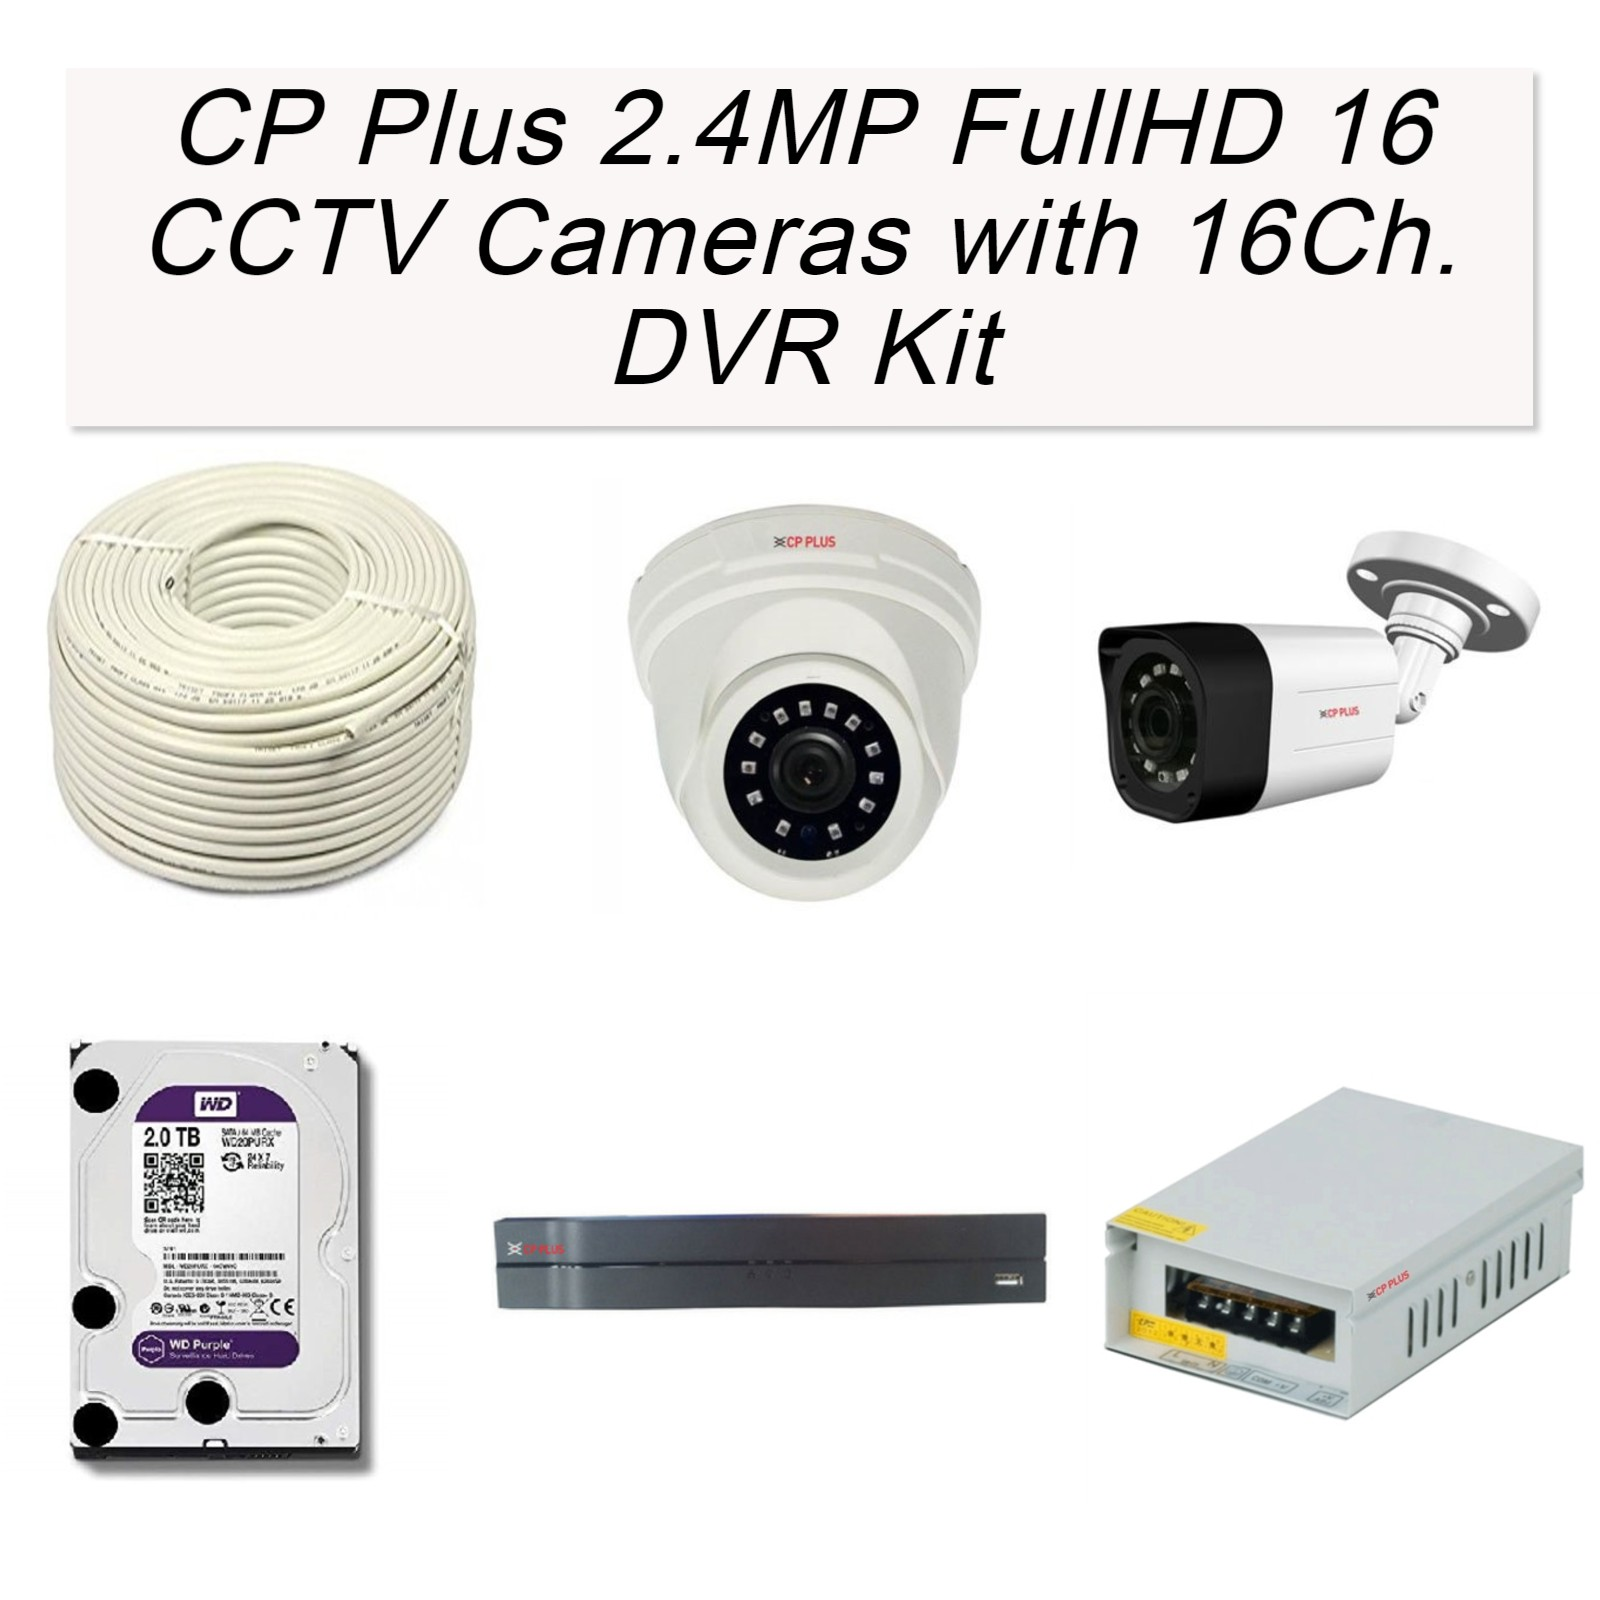 CP Plus 2.4MP FullHD 16 CCTV Cameras with 16Ch. DVR Kit